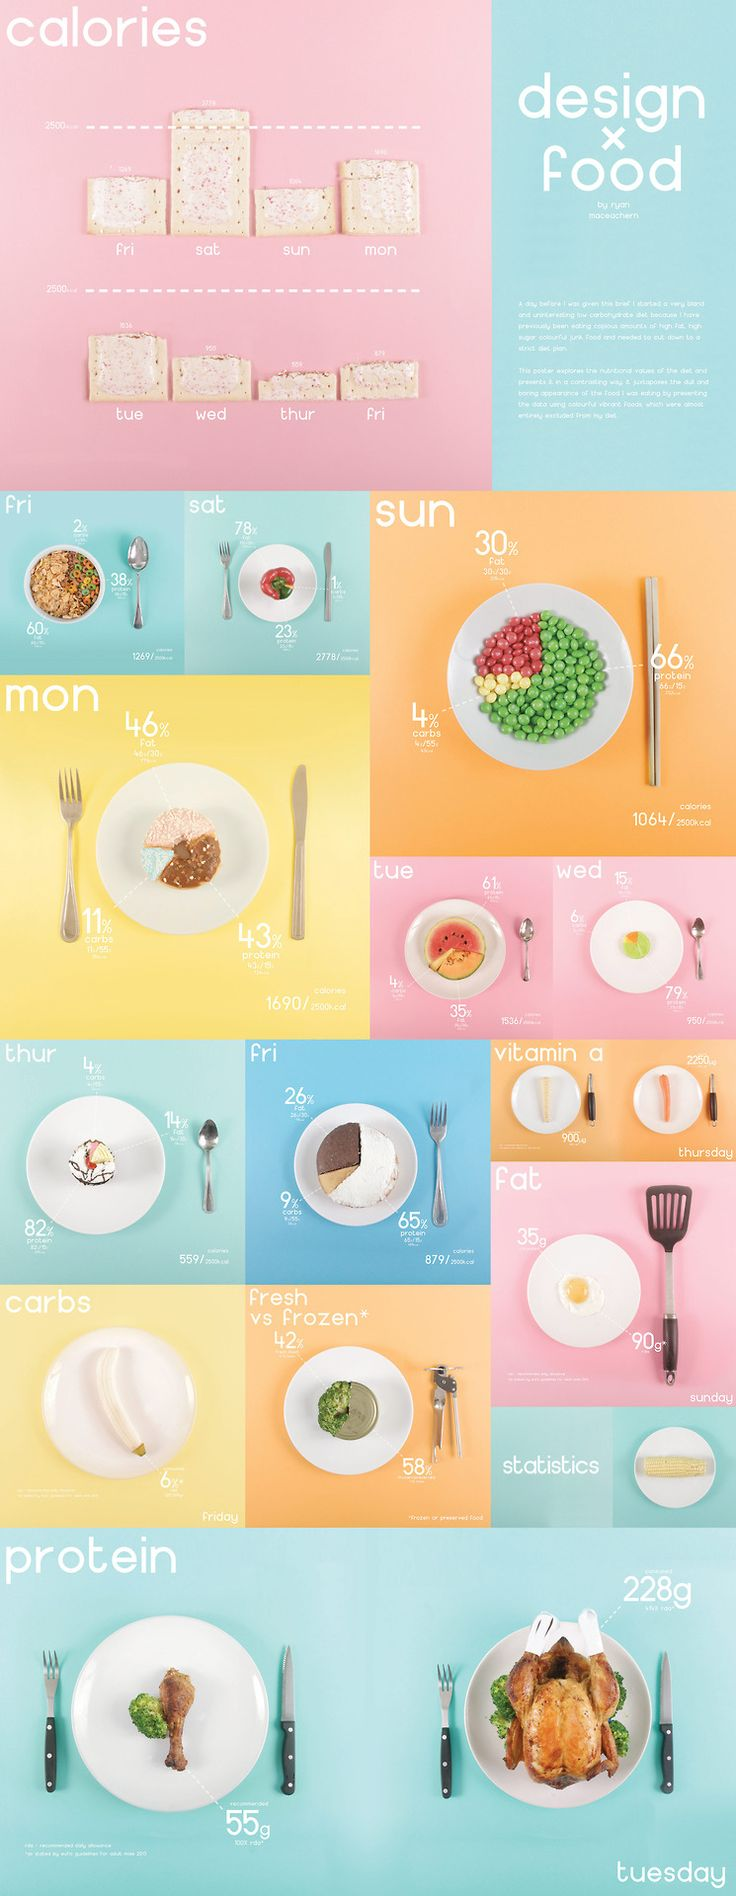 Designer Ryan MacEachern shows his eating habits via colourful, food-filled and data-rich graphics. The photography-approach brings the details of c